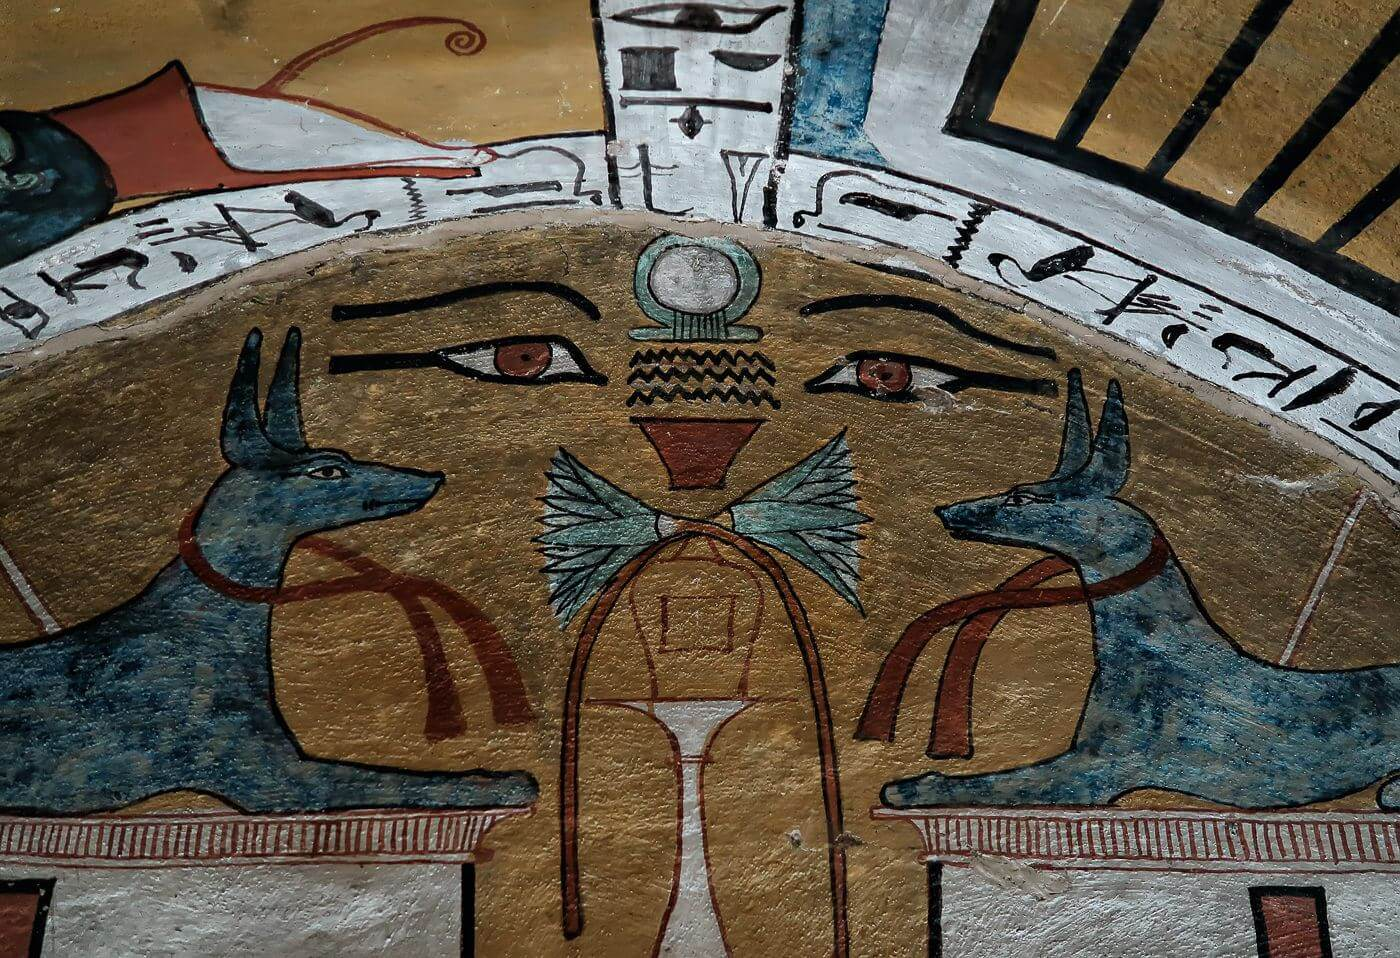 Tomb painting at Deir el Medina, Luxor, Egypt - Photo by Zed Sindelar of CuriousZed Photography